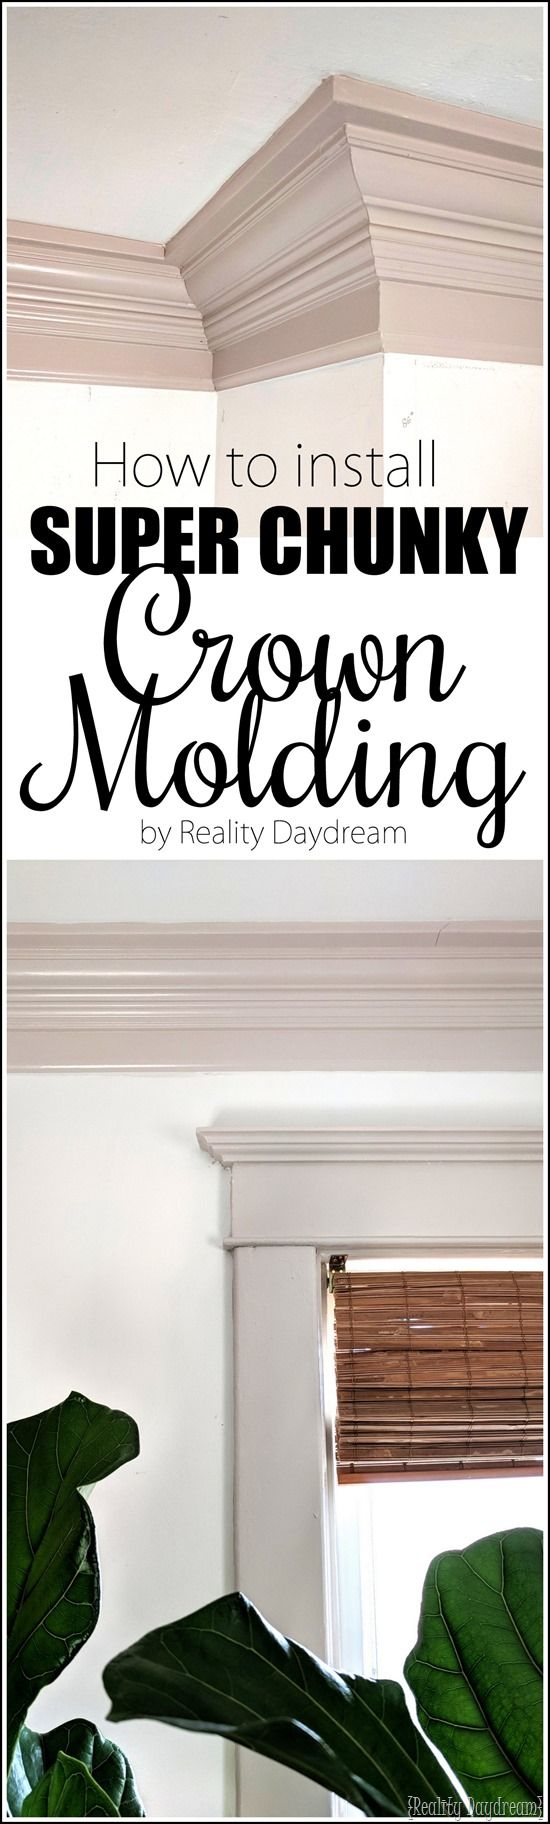 How to install super chunky BEEFY crown molding using layered trim pieces! #moulding {Reality Daydream}